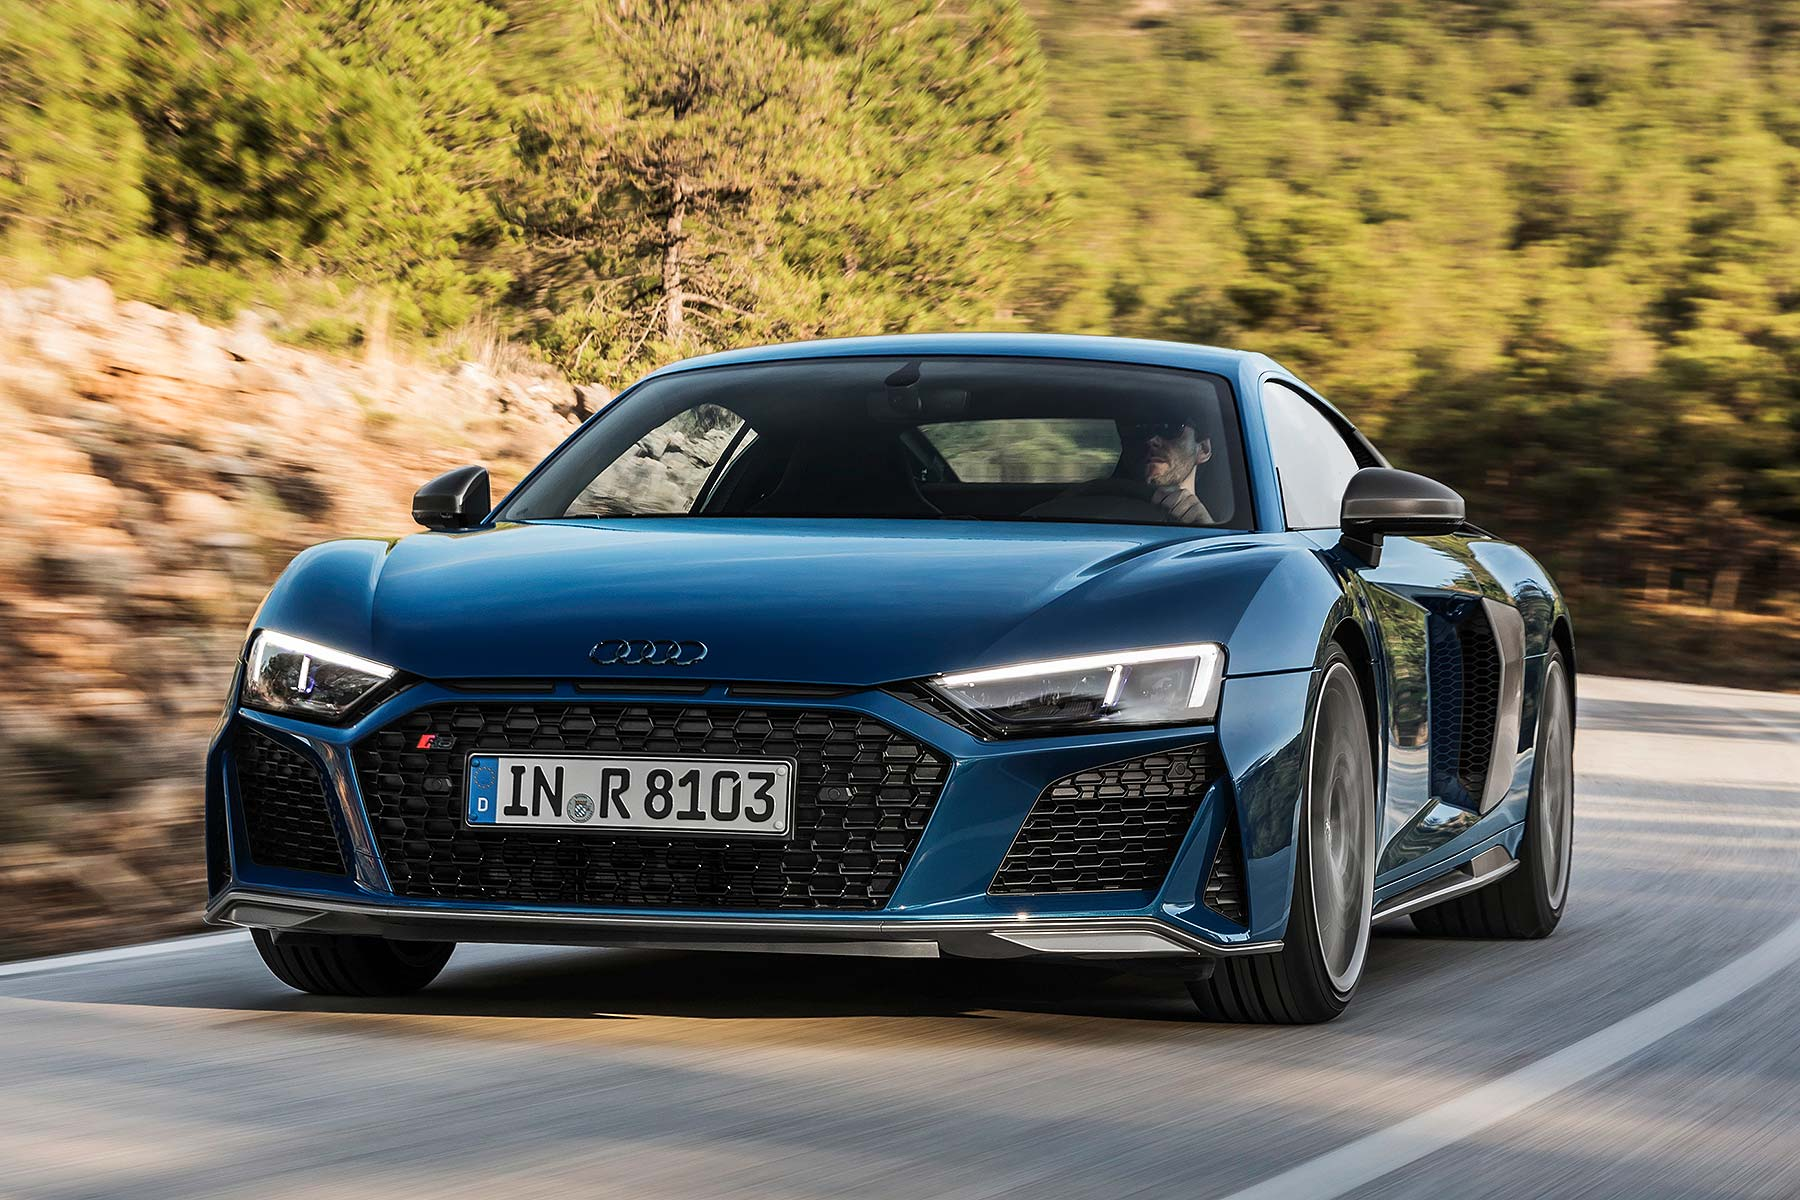 Revised 2019 Audi R8 Now Has The Power To Match A Mclaren 570s